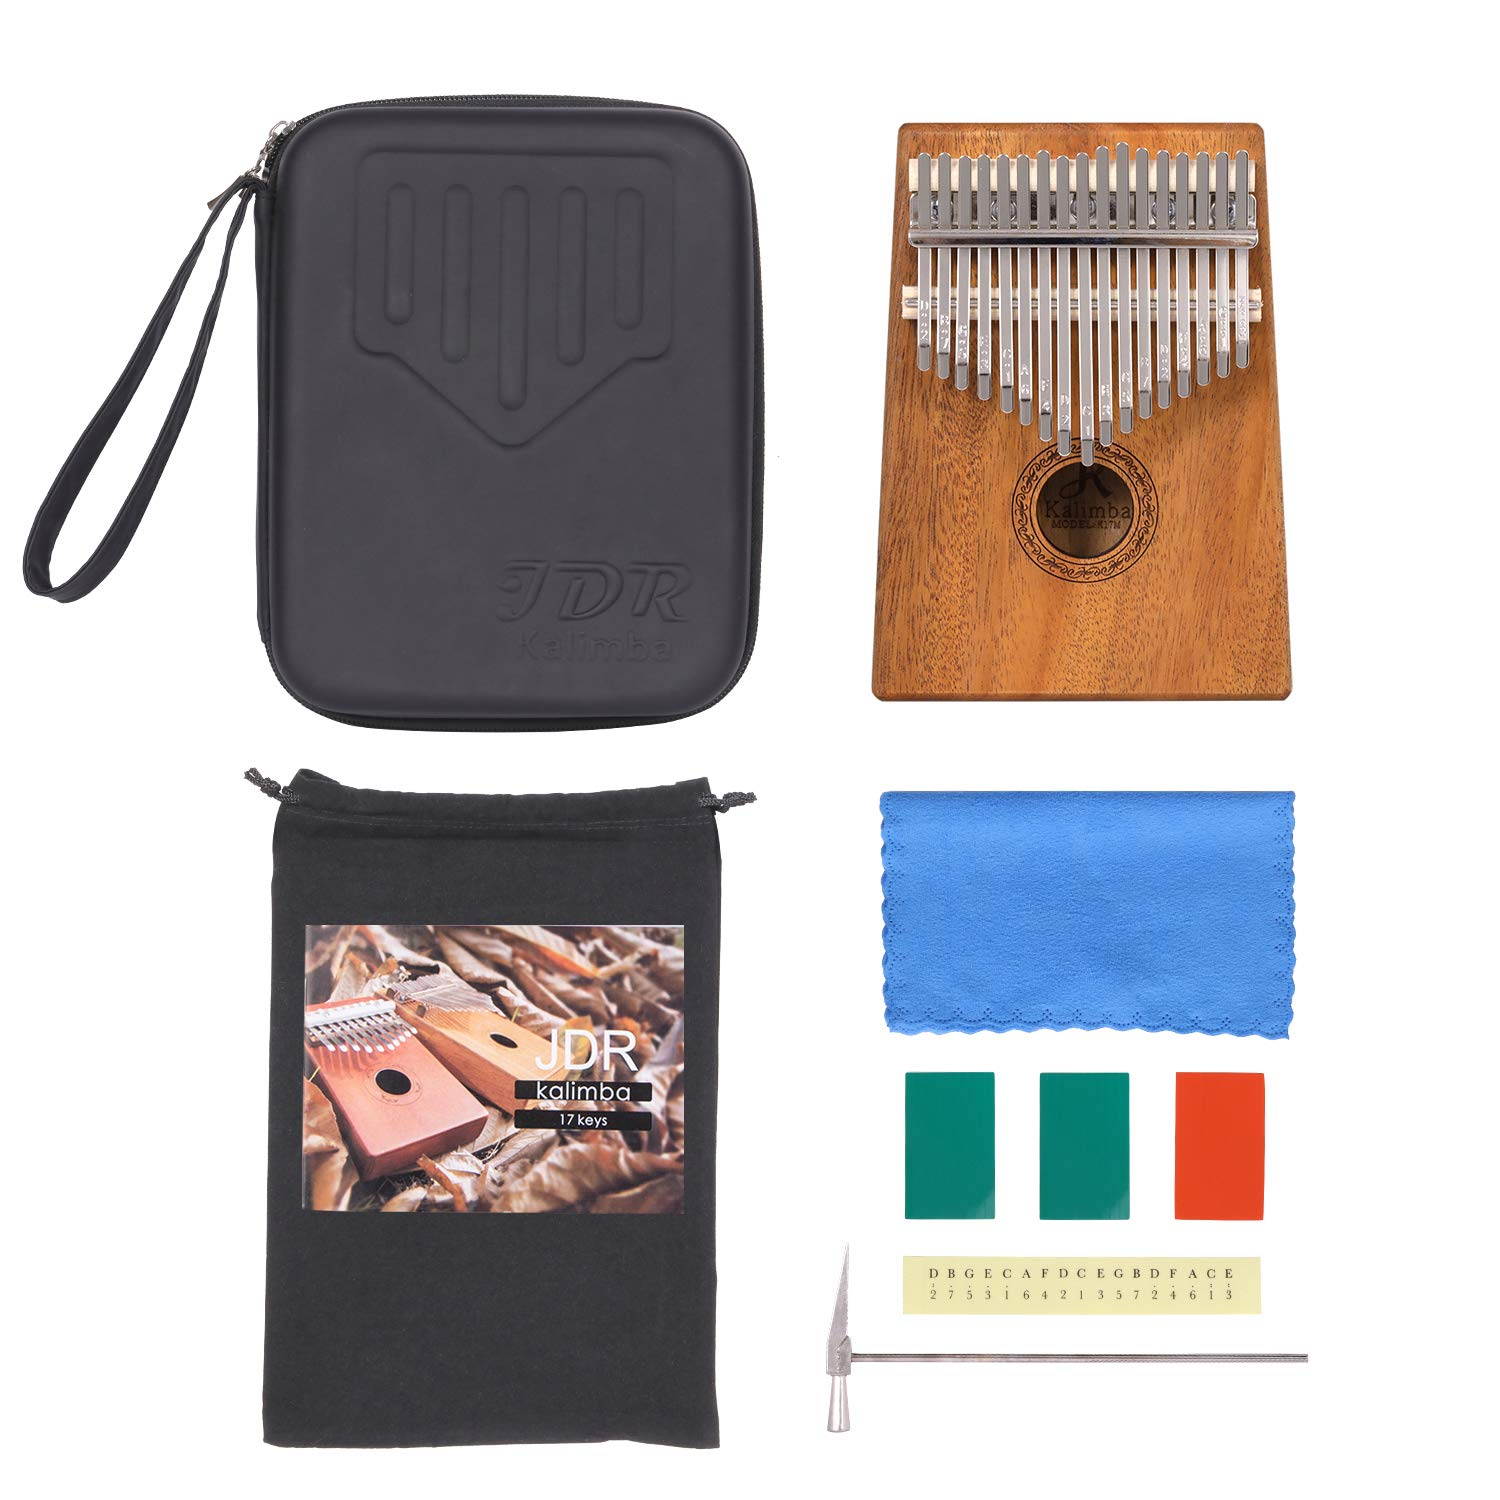 JDR 17 Keys kalimba, Thumb Piano with EVA Waterproof Hard Protective Case, Tuning Hammer and Music book, Unique and great birthday gift for musicians or kids without any musical basis by JDR (Image #6)